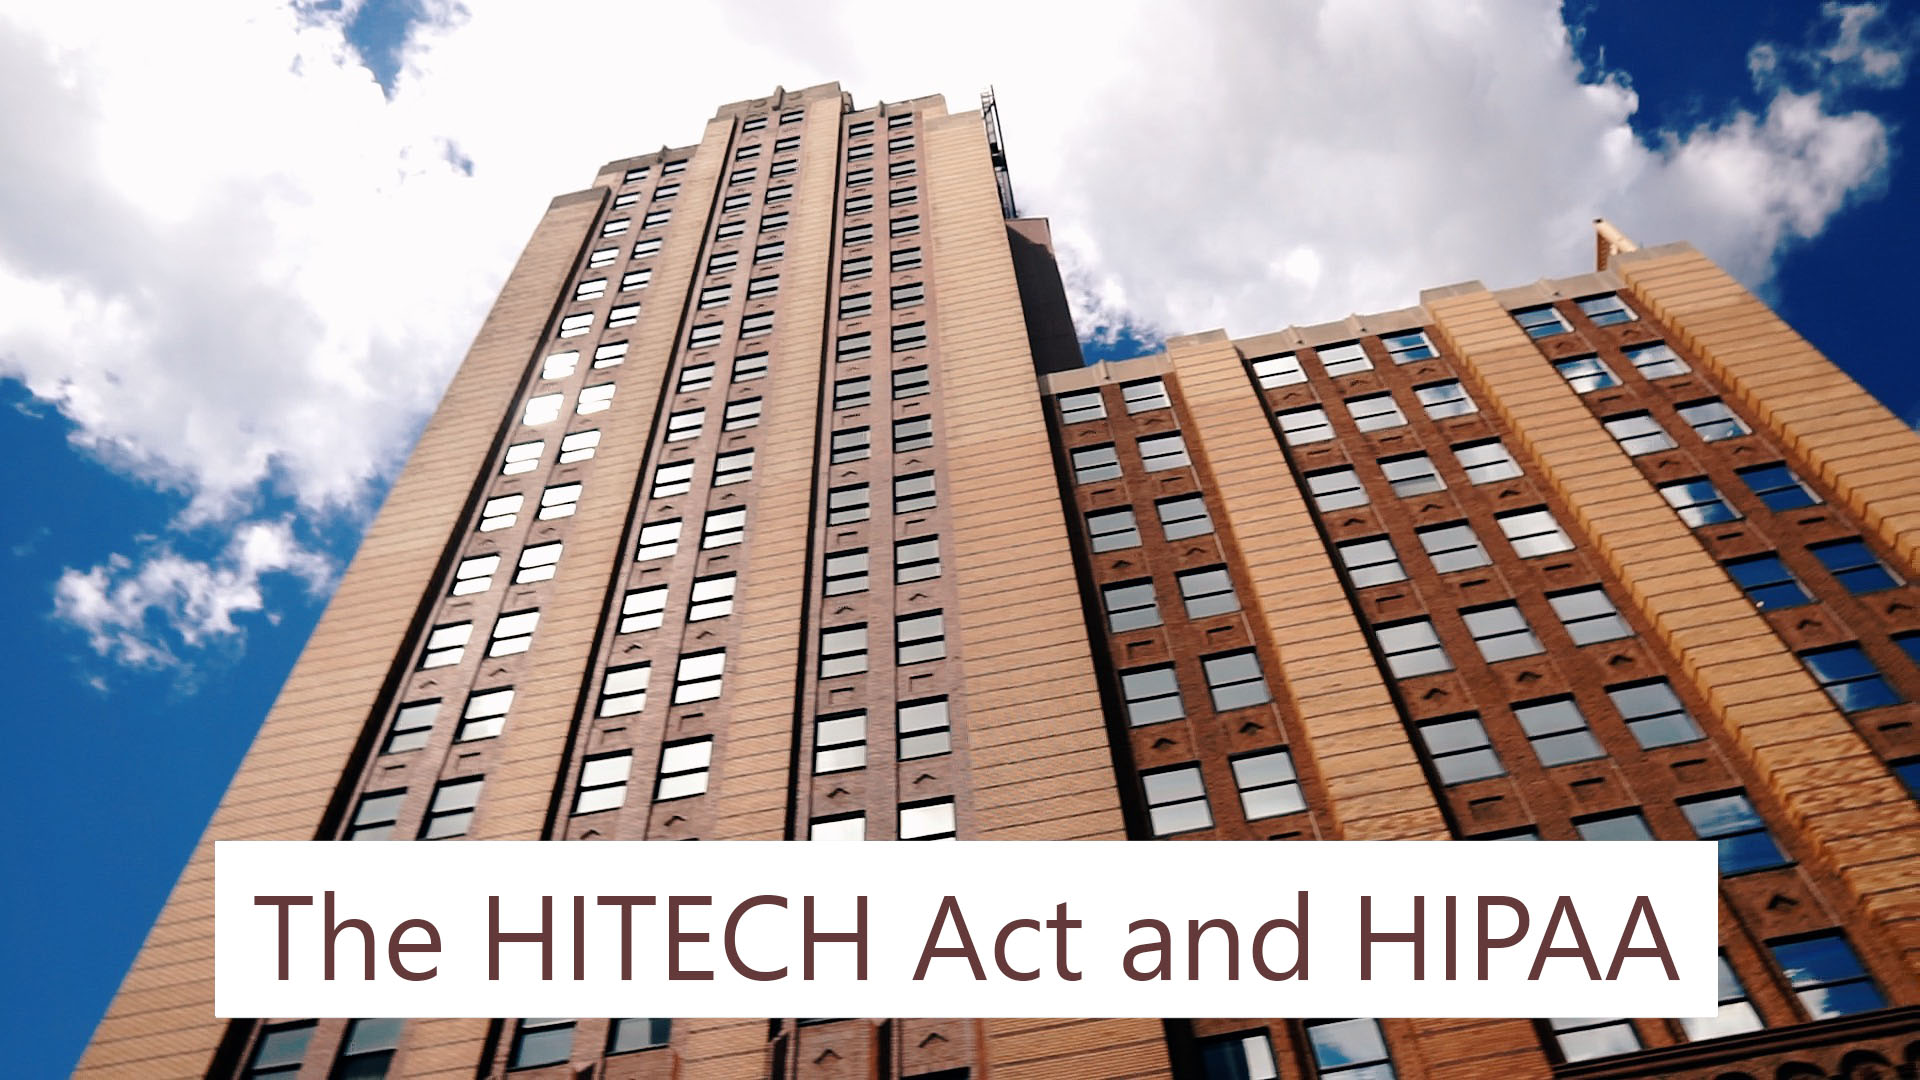 The HITECH Act and HIPAA